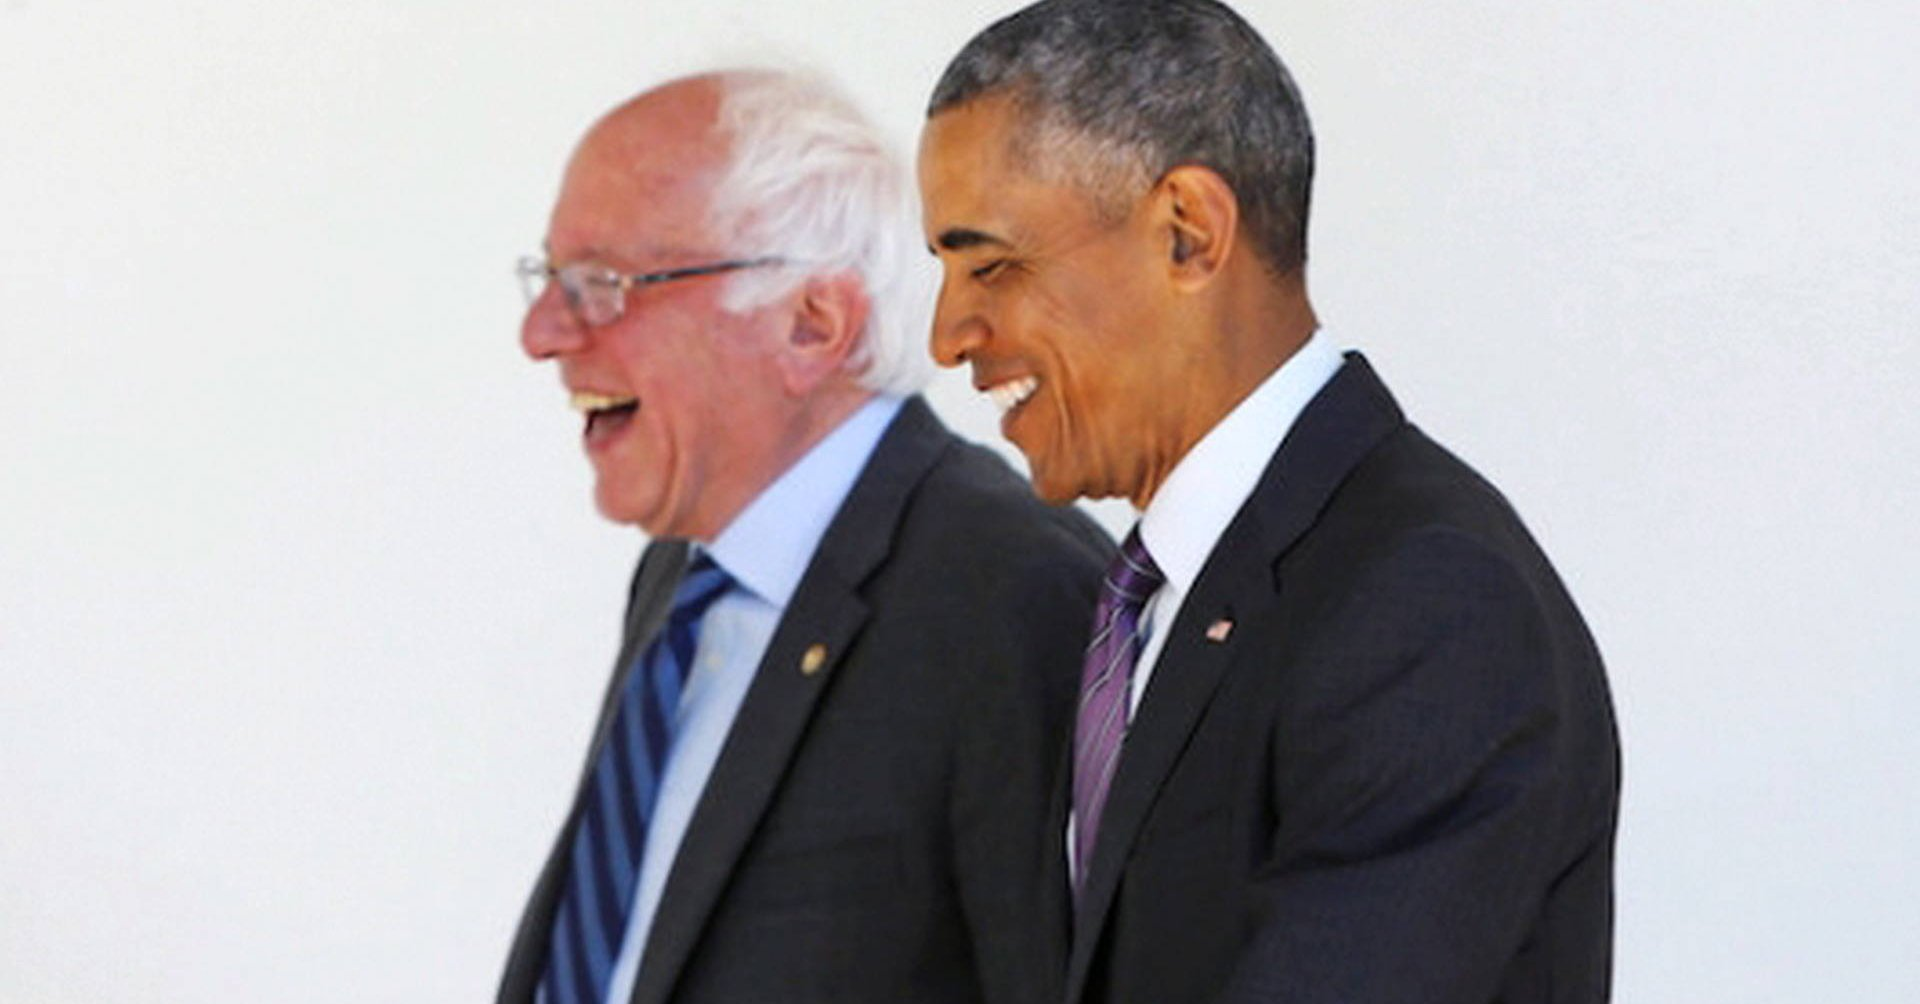 Bernie and Obama